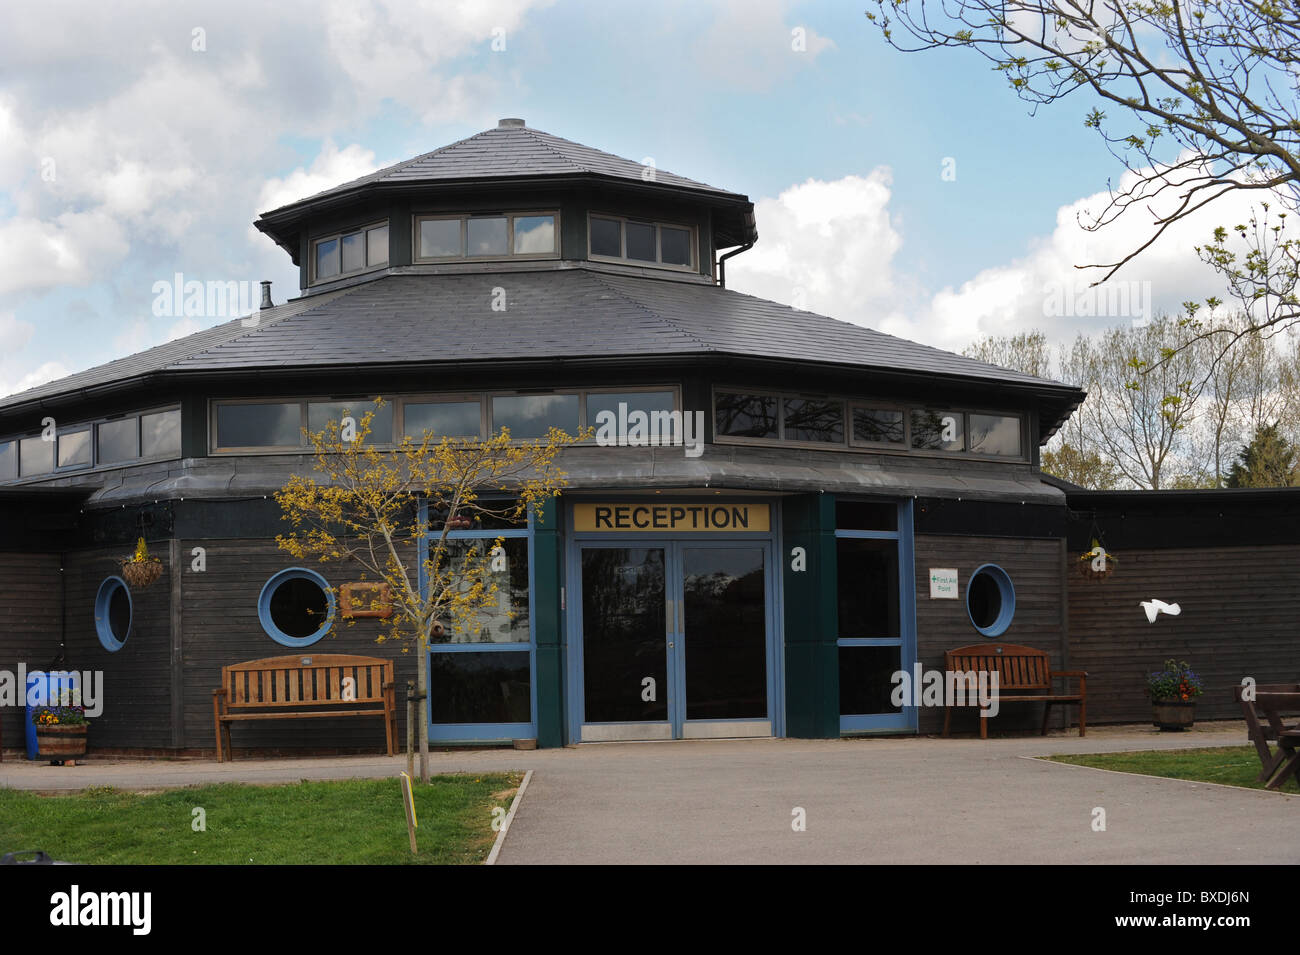 Reception building for the Raystede Centre for Animal Welfare in Ringmer East Sussex - Stock Image